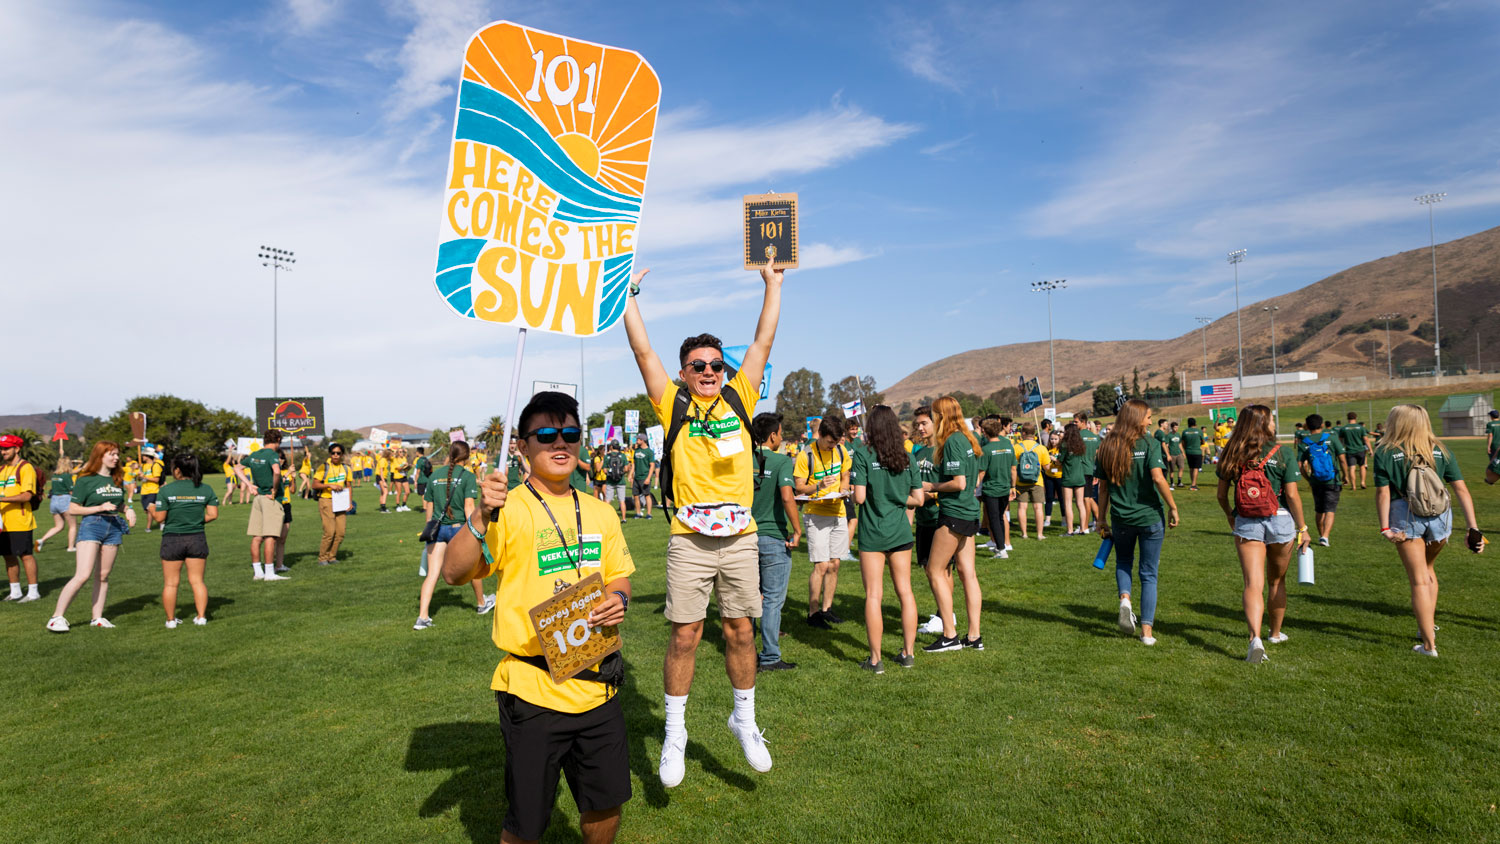 Leaders of WOW group 101 jump to welcome their Wowies at Cal Poly